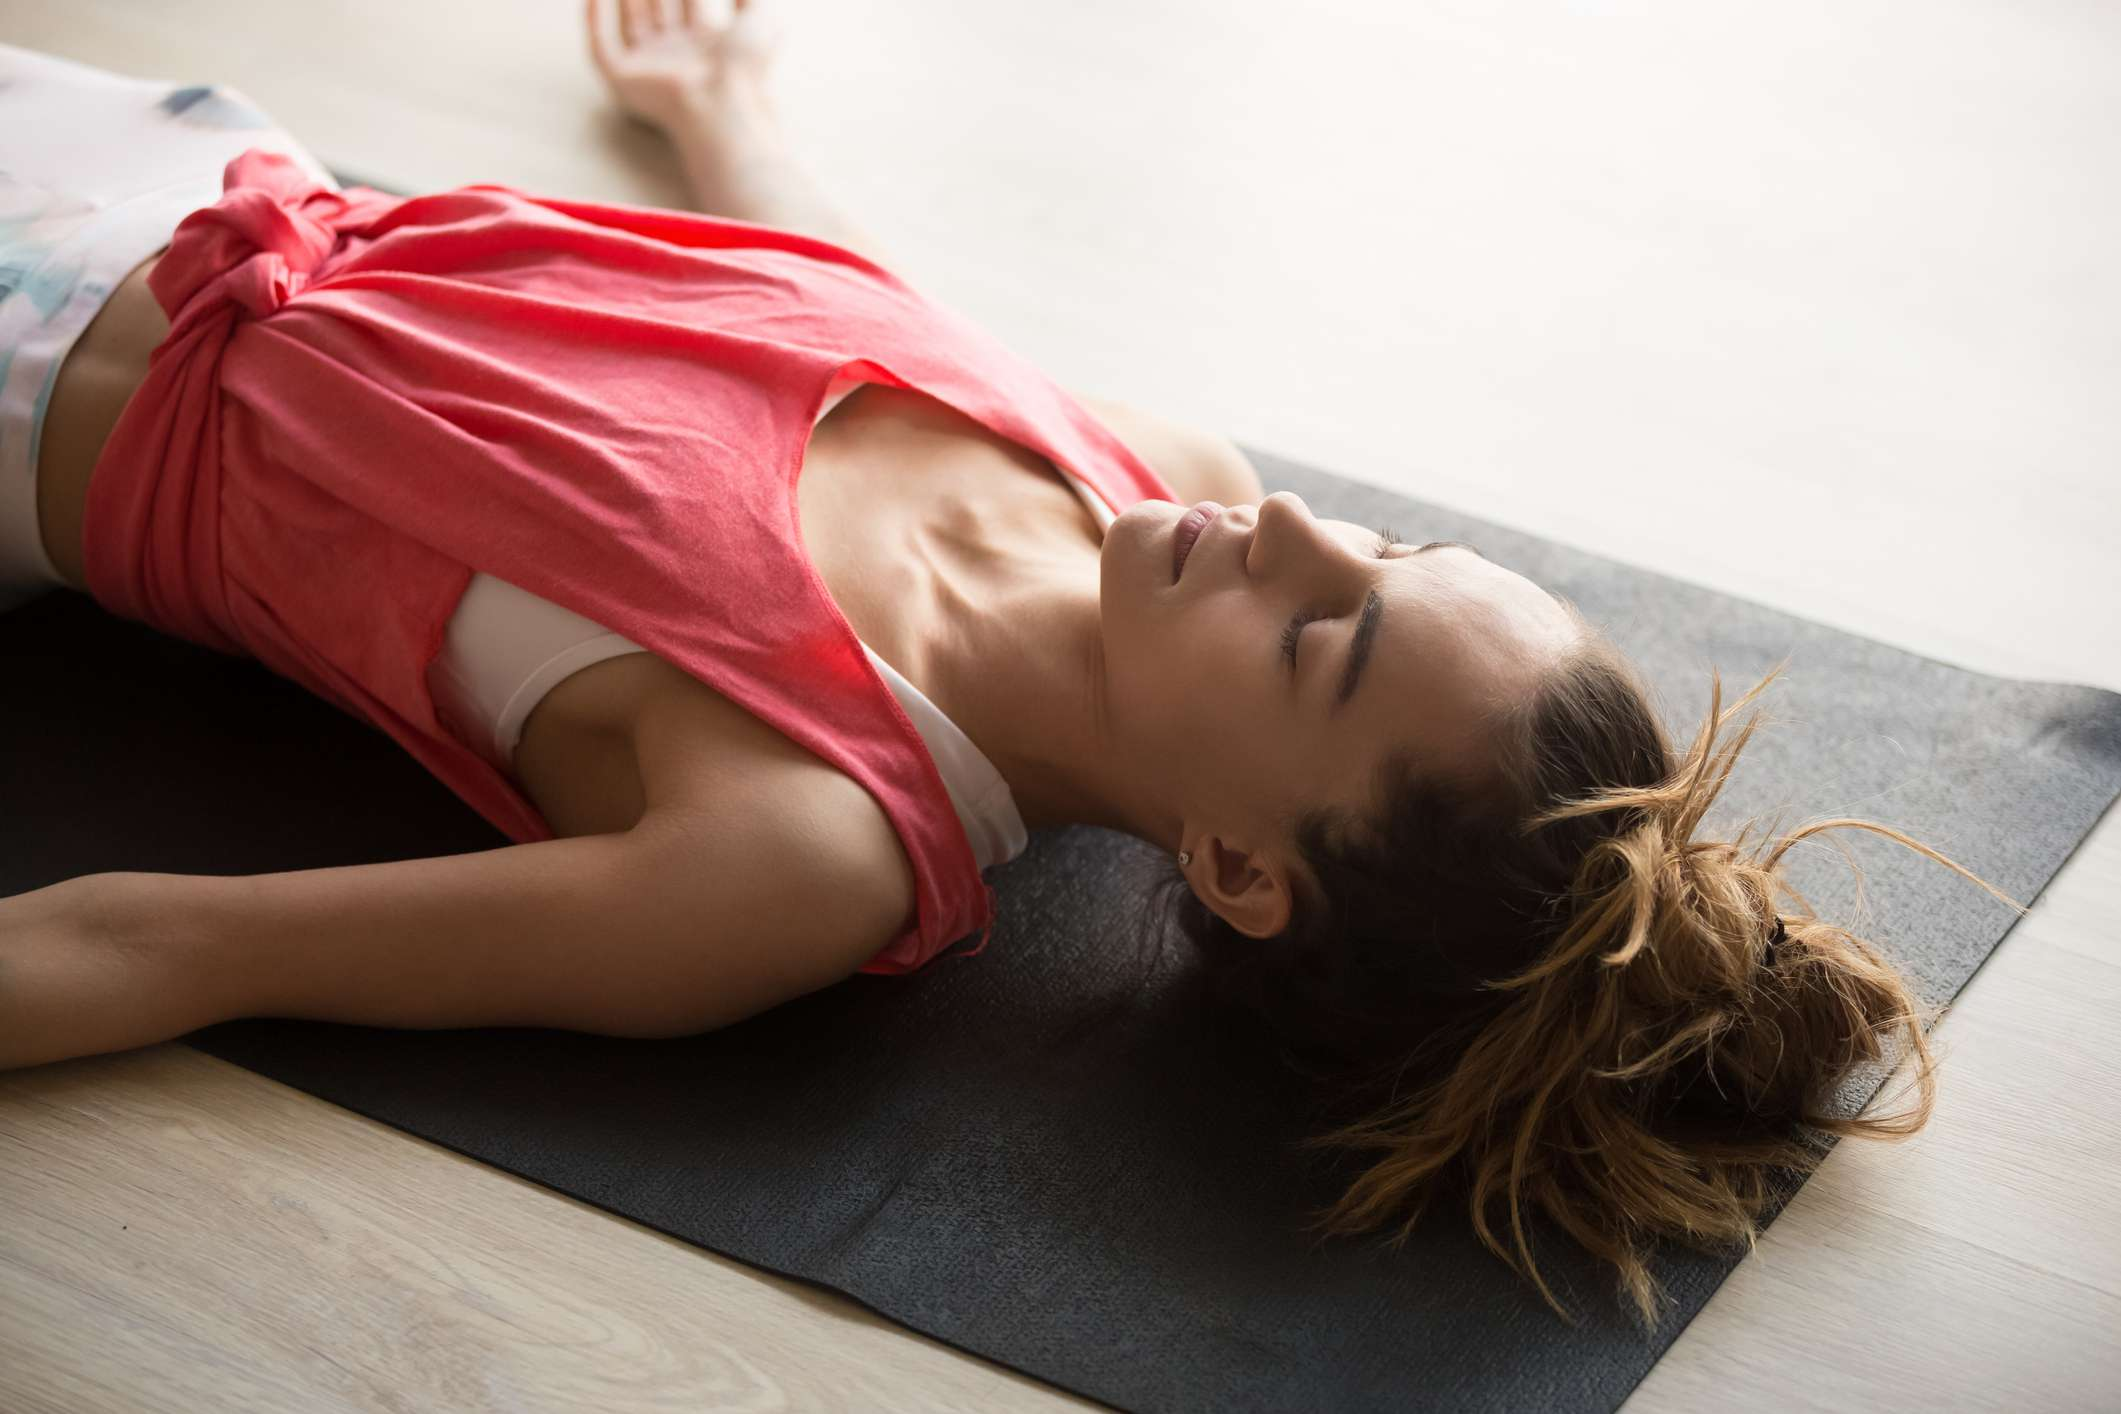 A white woman with a pink-red tank top laying on a gray mat with her eyes closed.